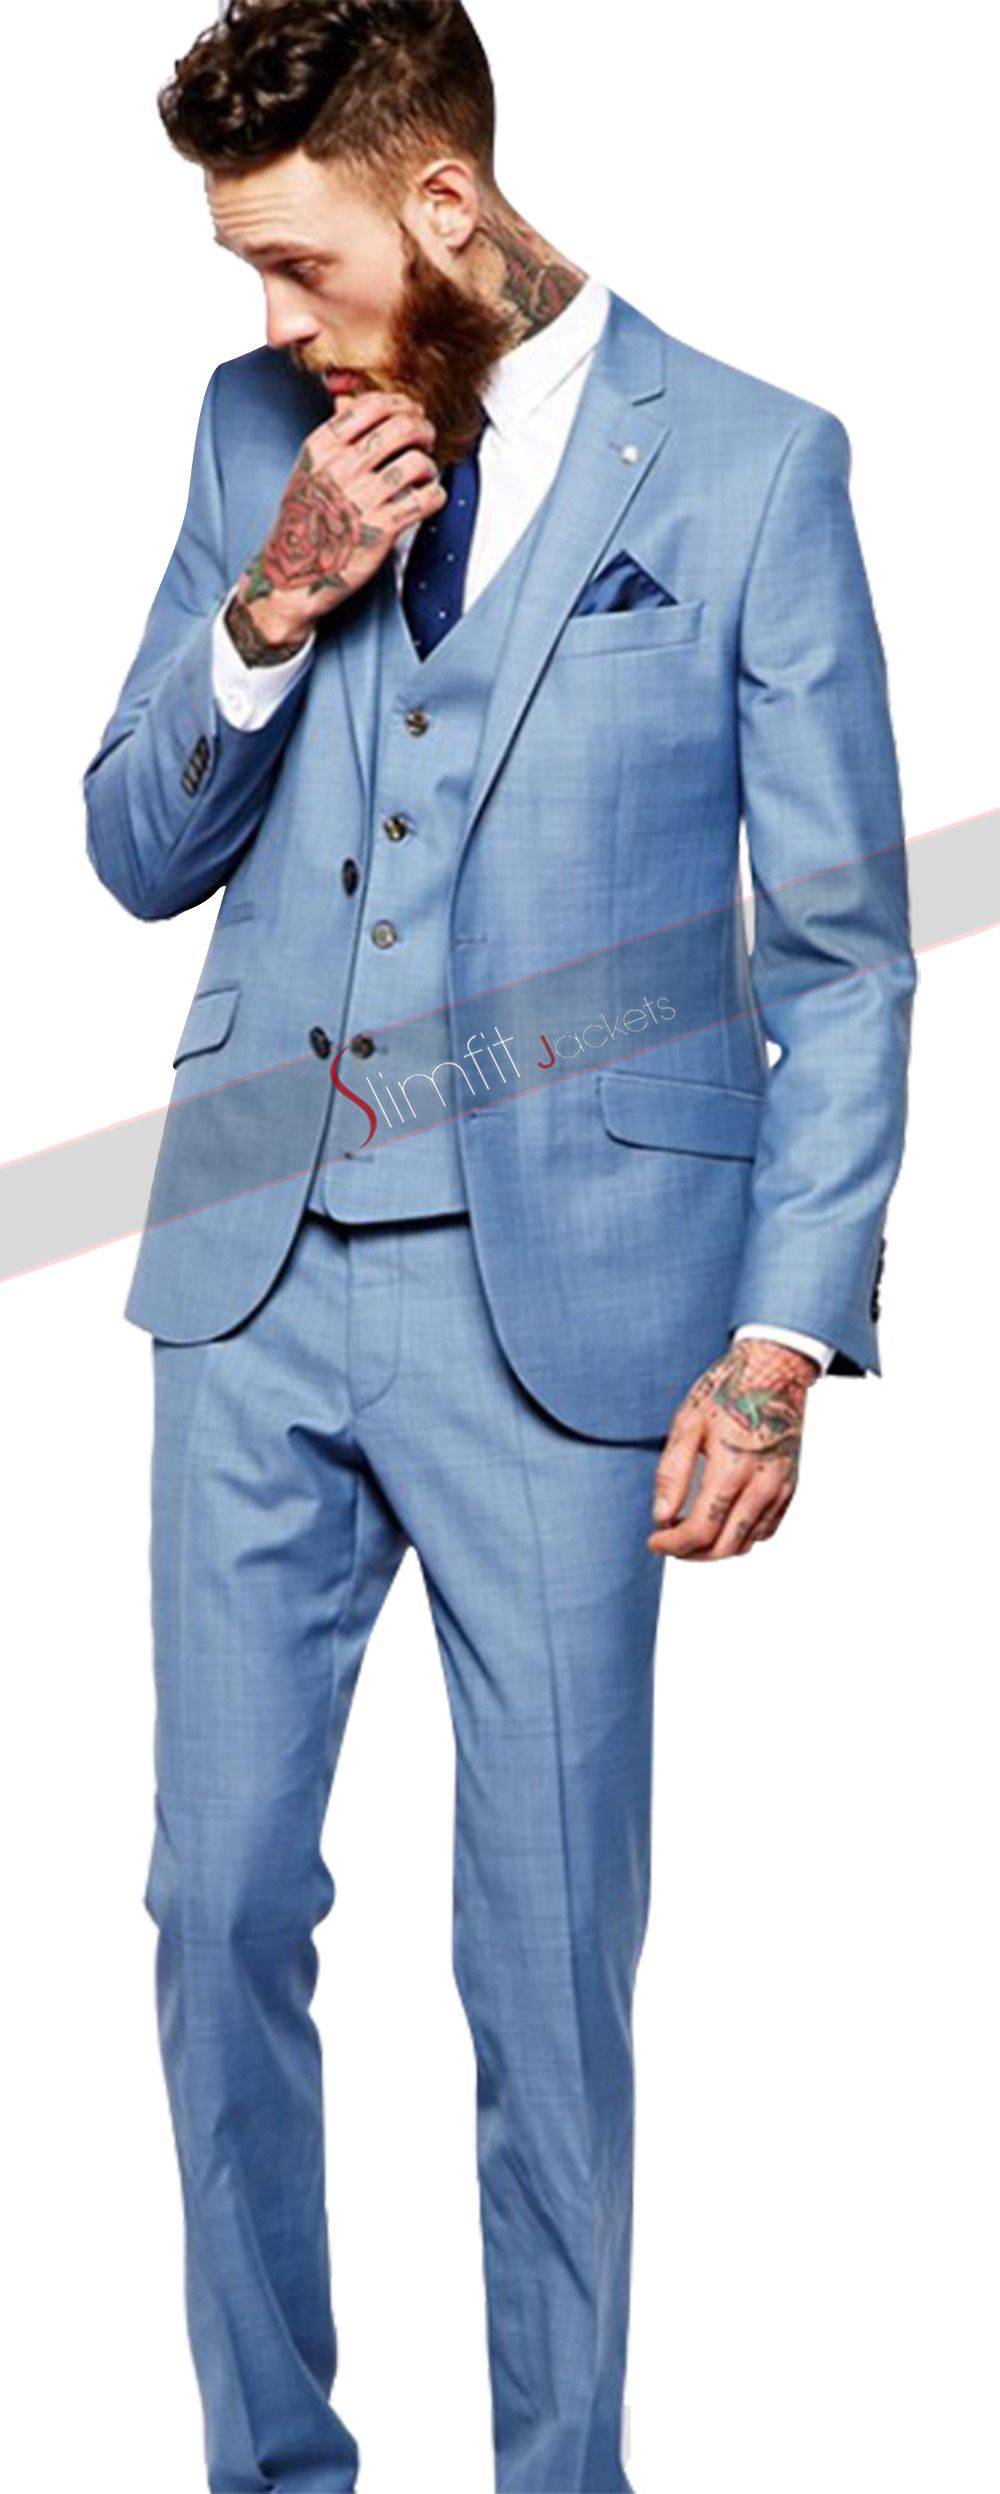 Slim Fit Light Blue 3 Piece Suit | Lights, Wedding and Wedding suits